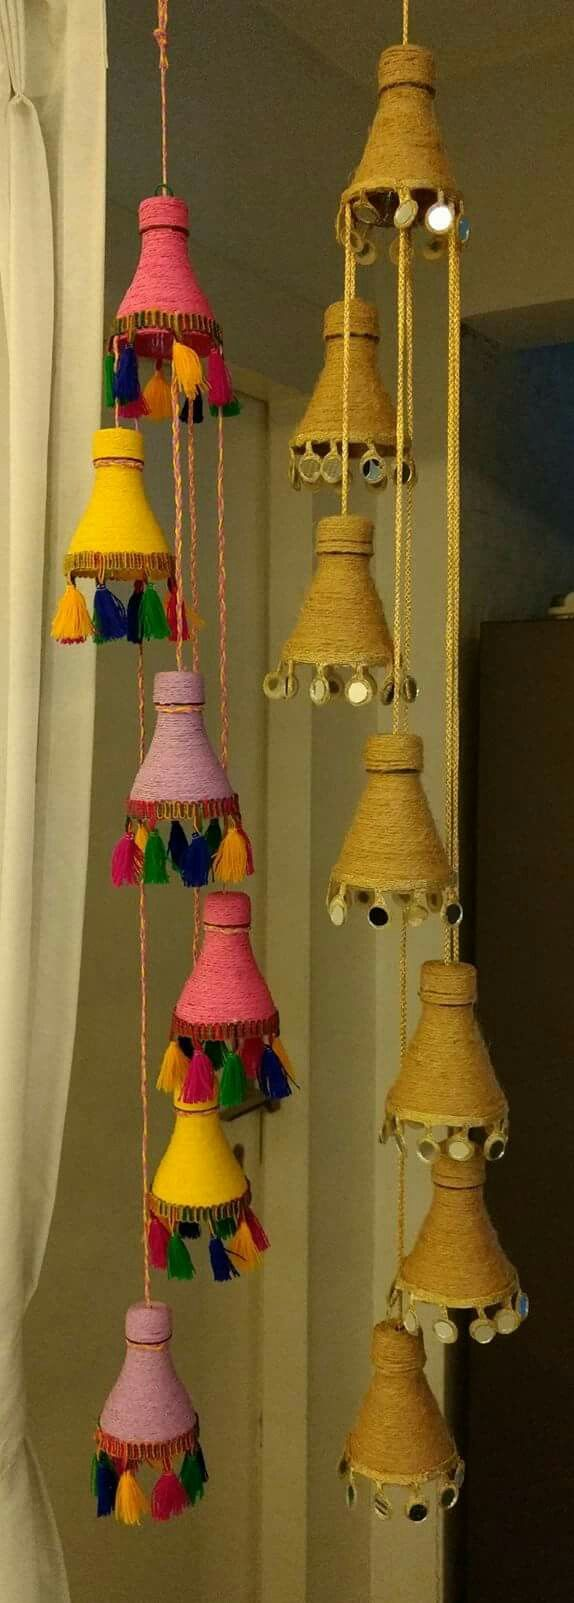 How To Use Waste Bottles For Decoration Pinparul Patel On Chime  Pinterest  Reuse Plastic Bottles